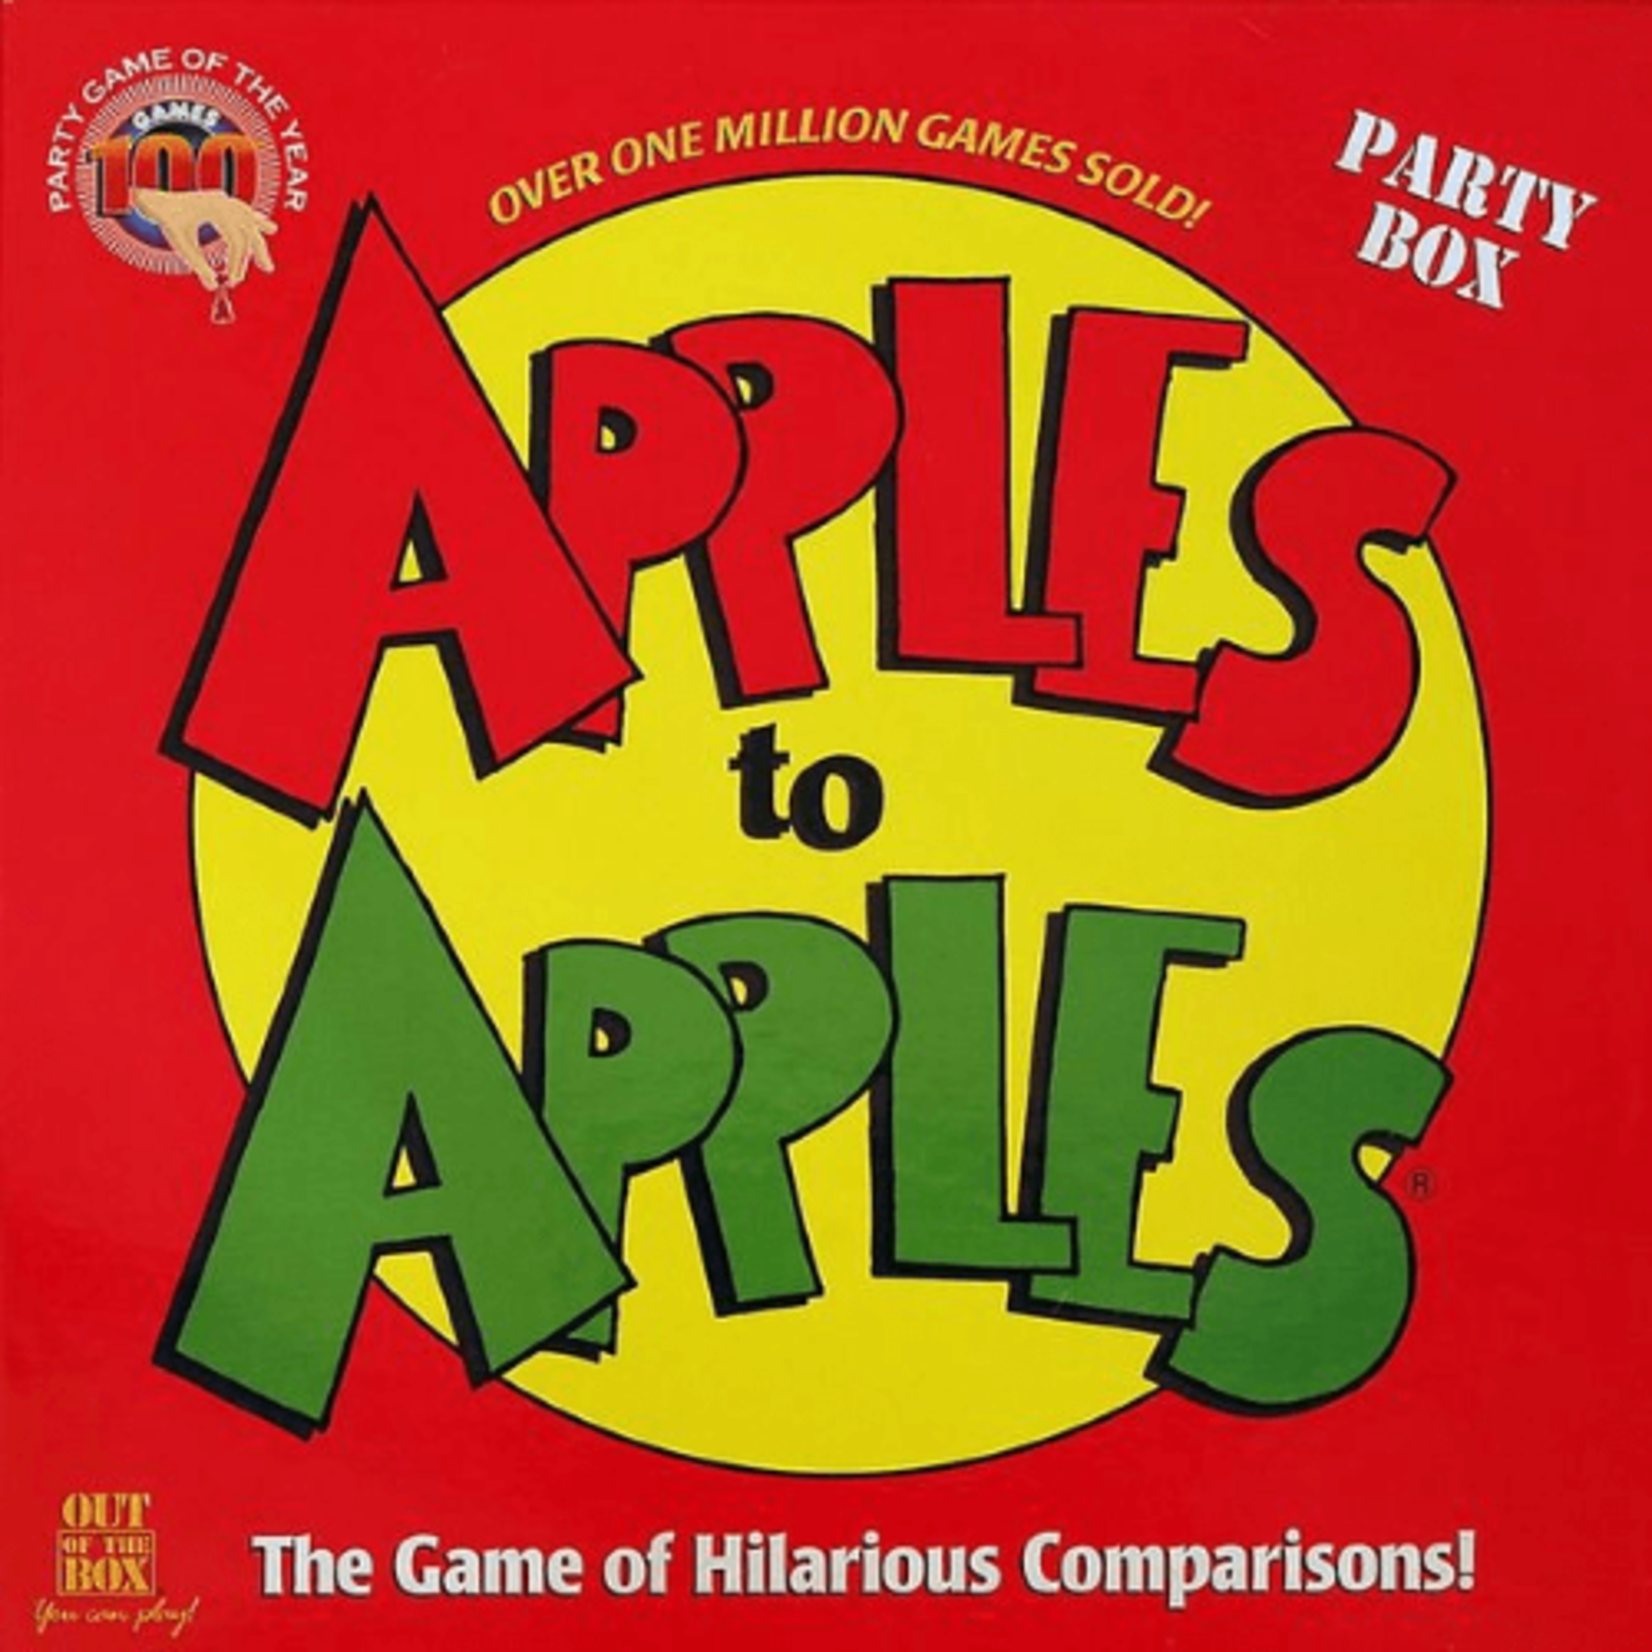 Mattel Apples to Apples: Party Box